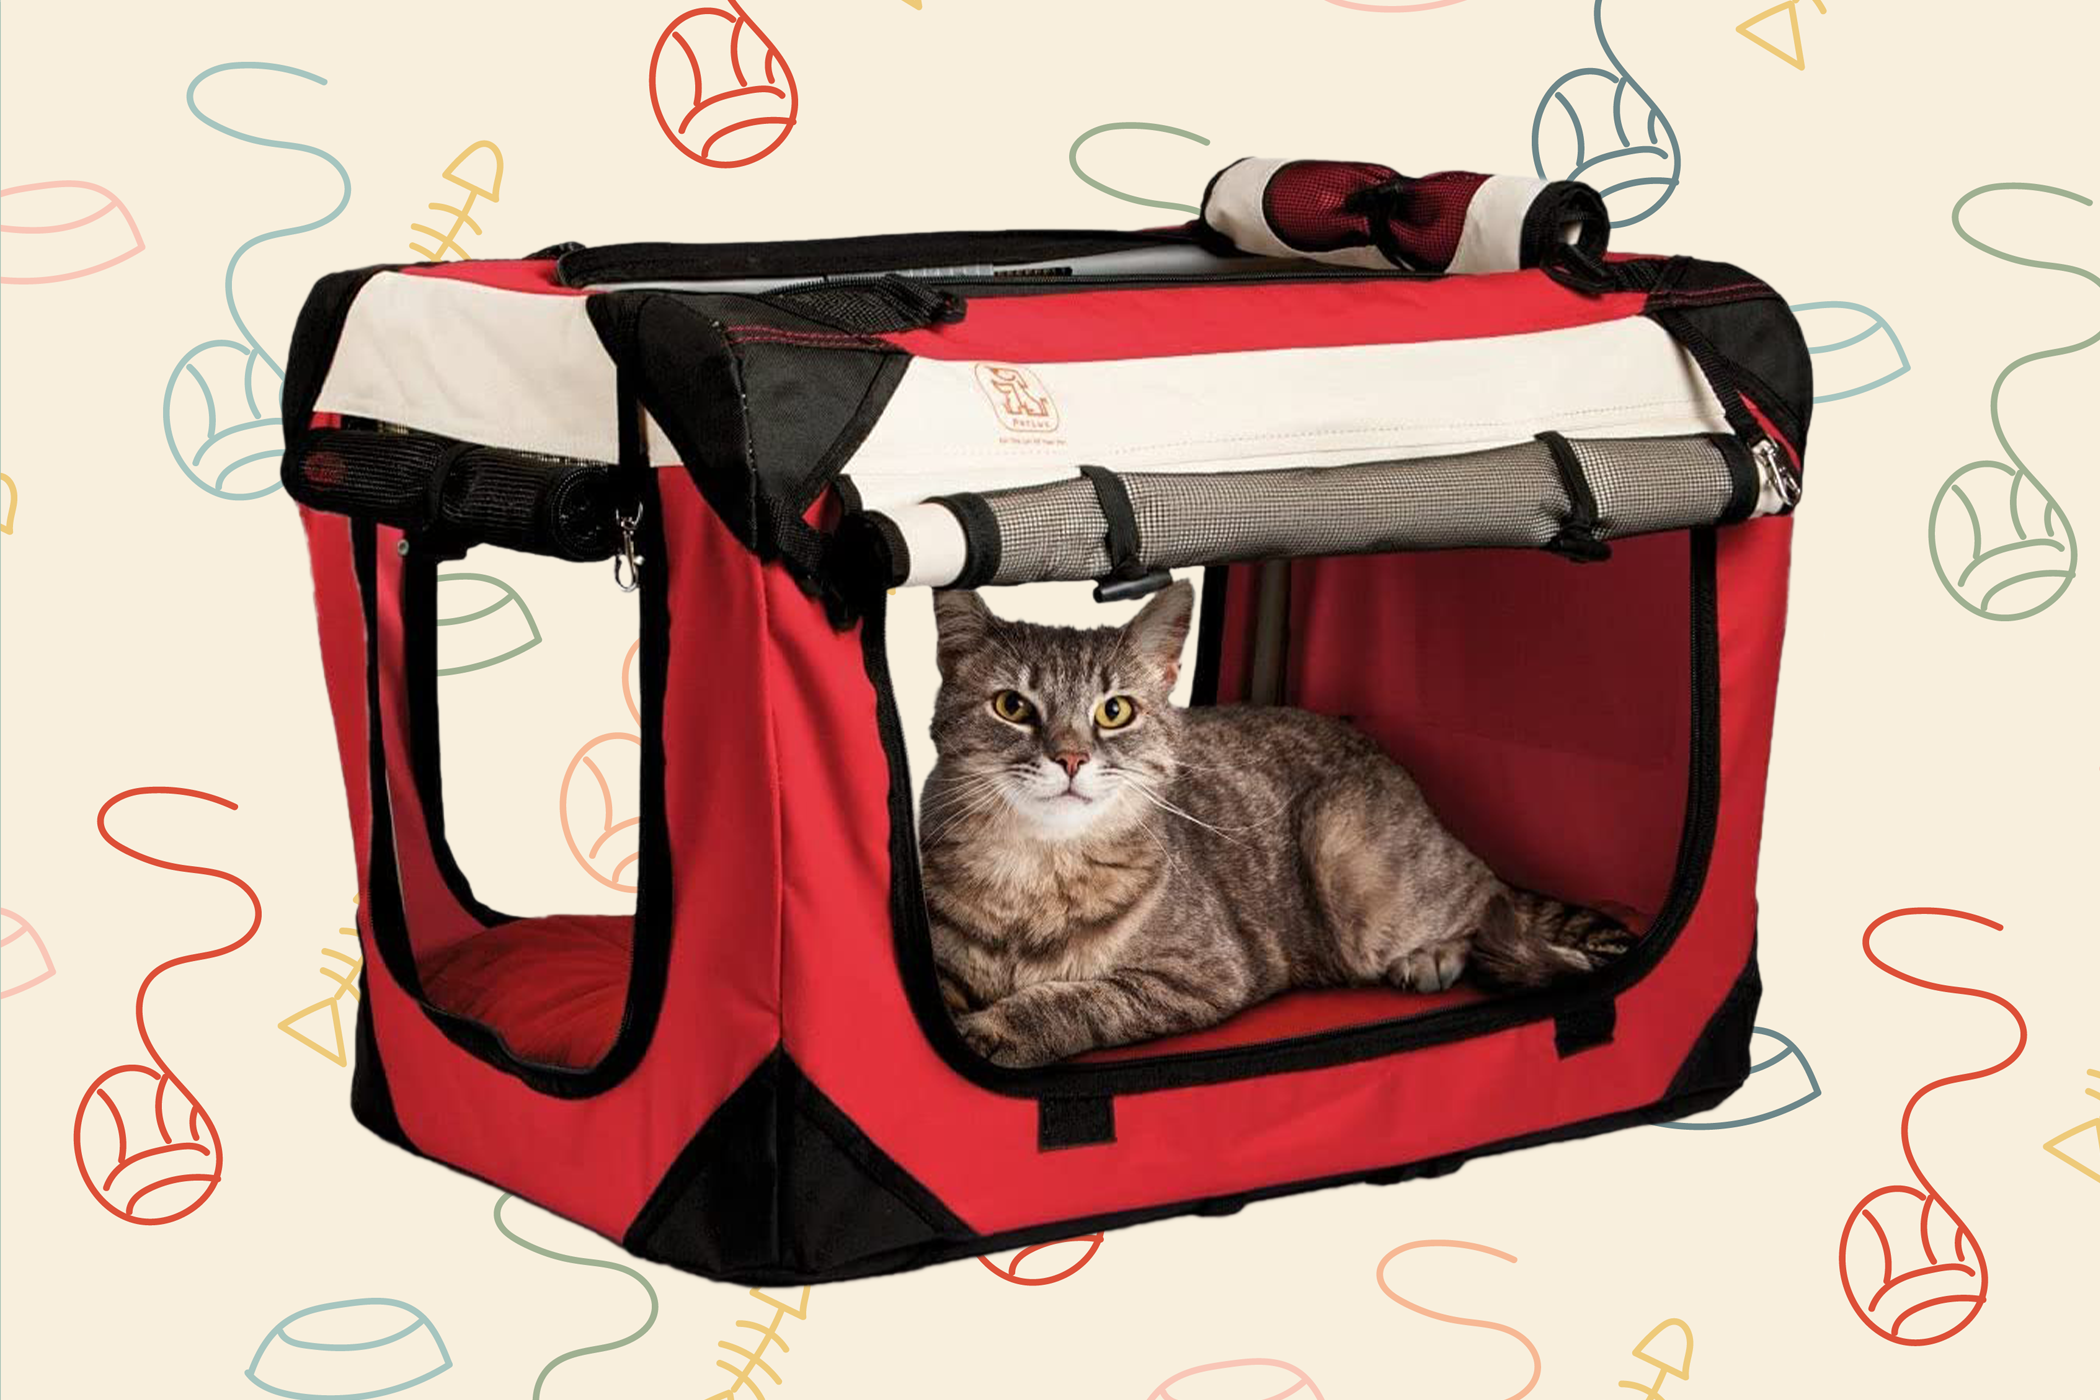 cat laying in a red cat carrier